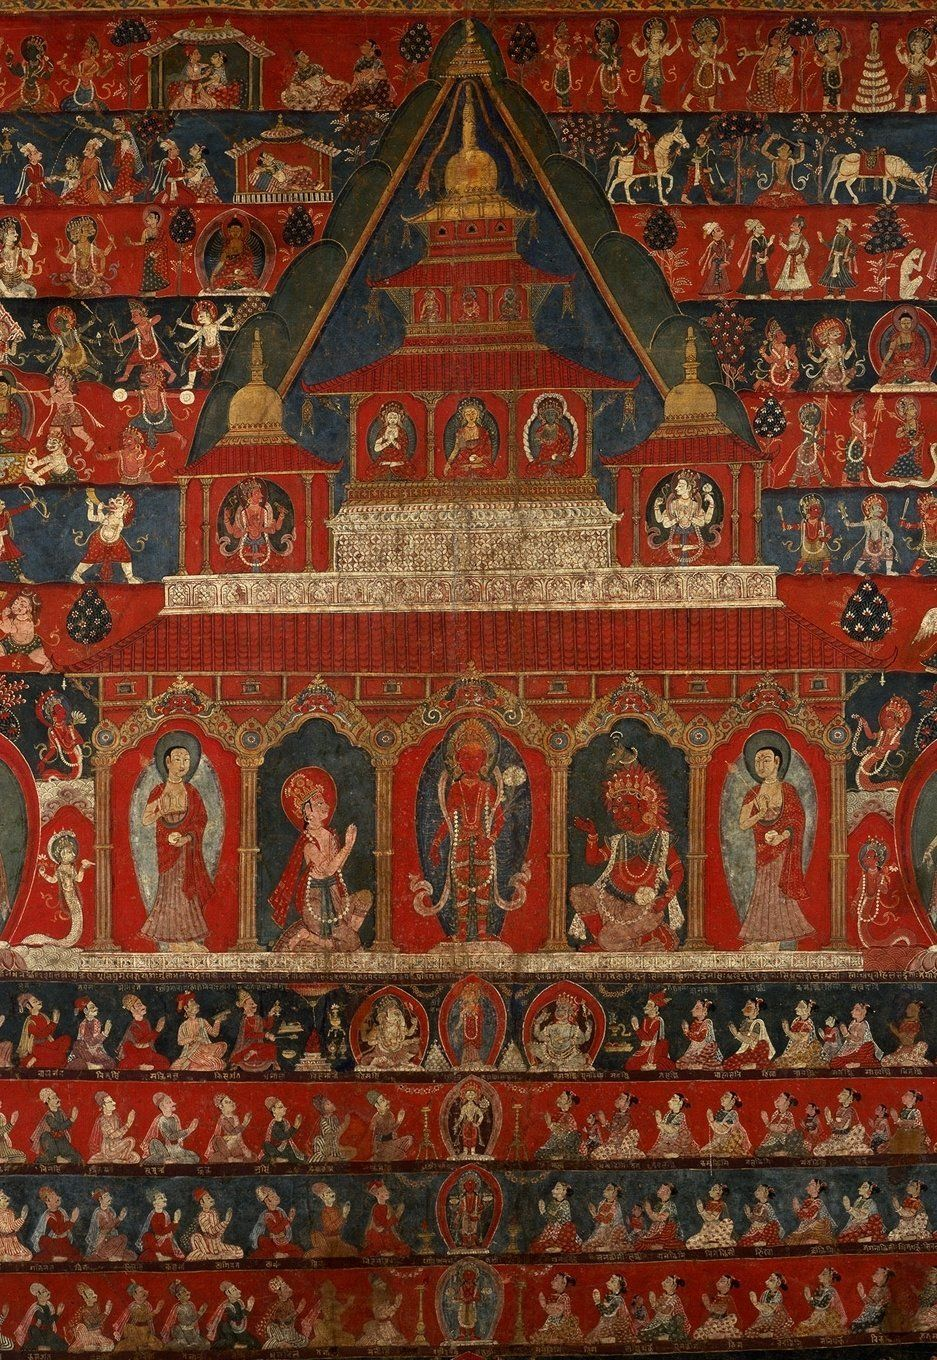 This scroll paintings (paubha), one of the largest in the world, depicts the temple of Rato Macchendranath in the ancient kin